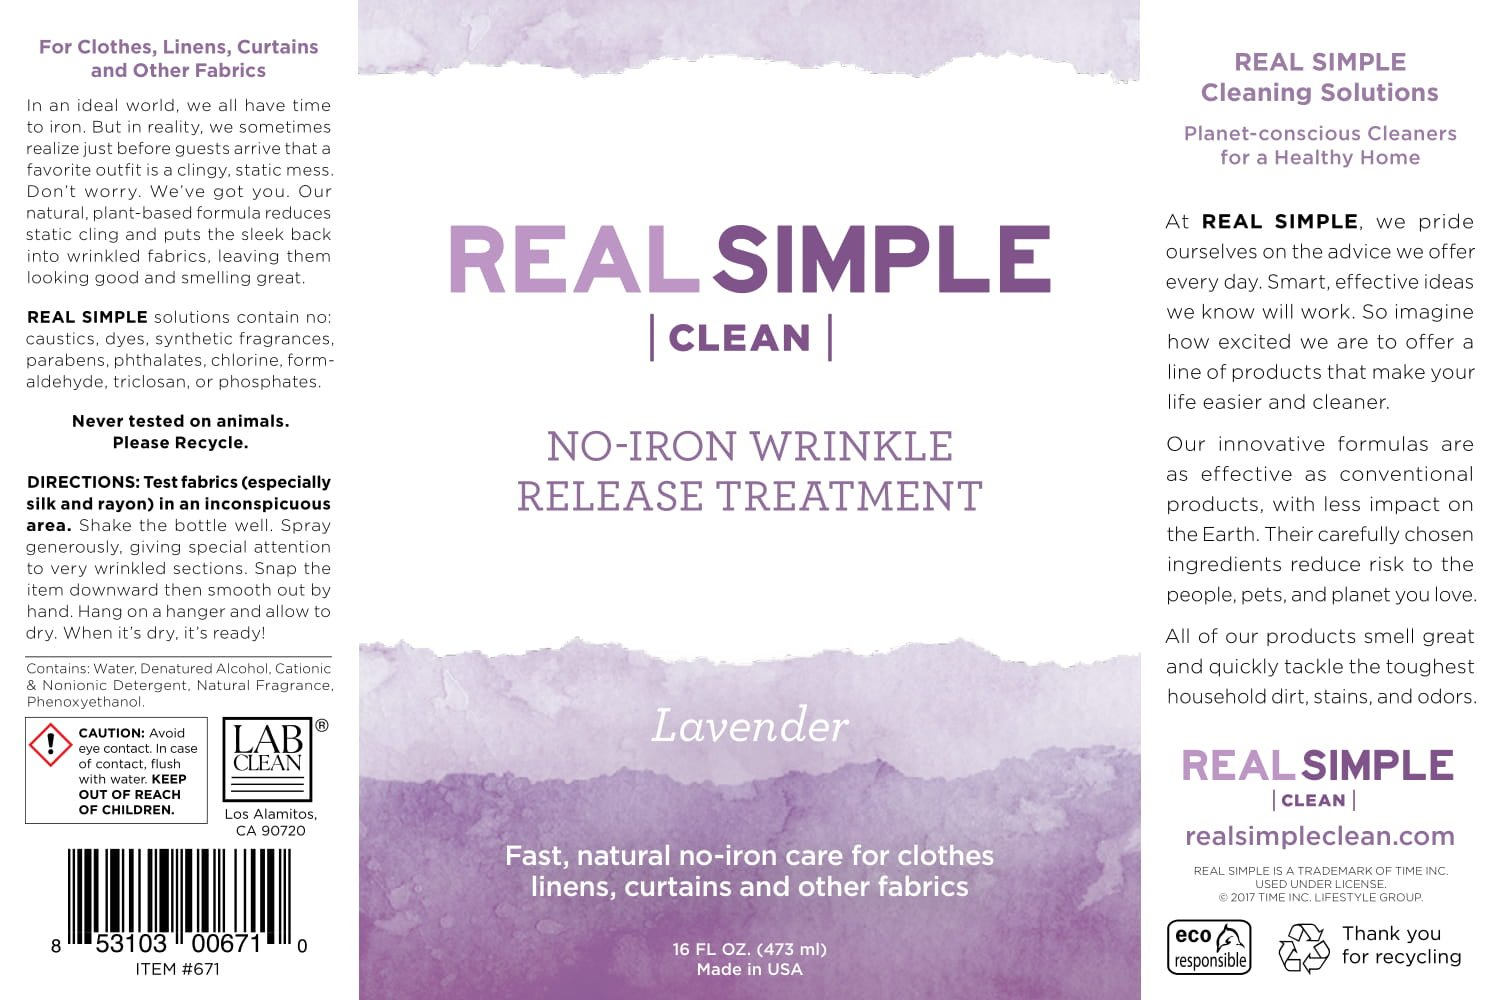 Real Simple Clean Wrinkle Release, 16 ounce Lavender, Static Cling Remover, Pillow & Fabric Freshener, Out the Door No-Iron Quick Fix, USDA Certified Biobased Product by Real Simple (Image #4)